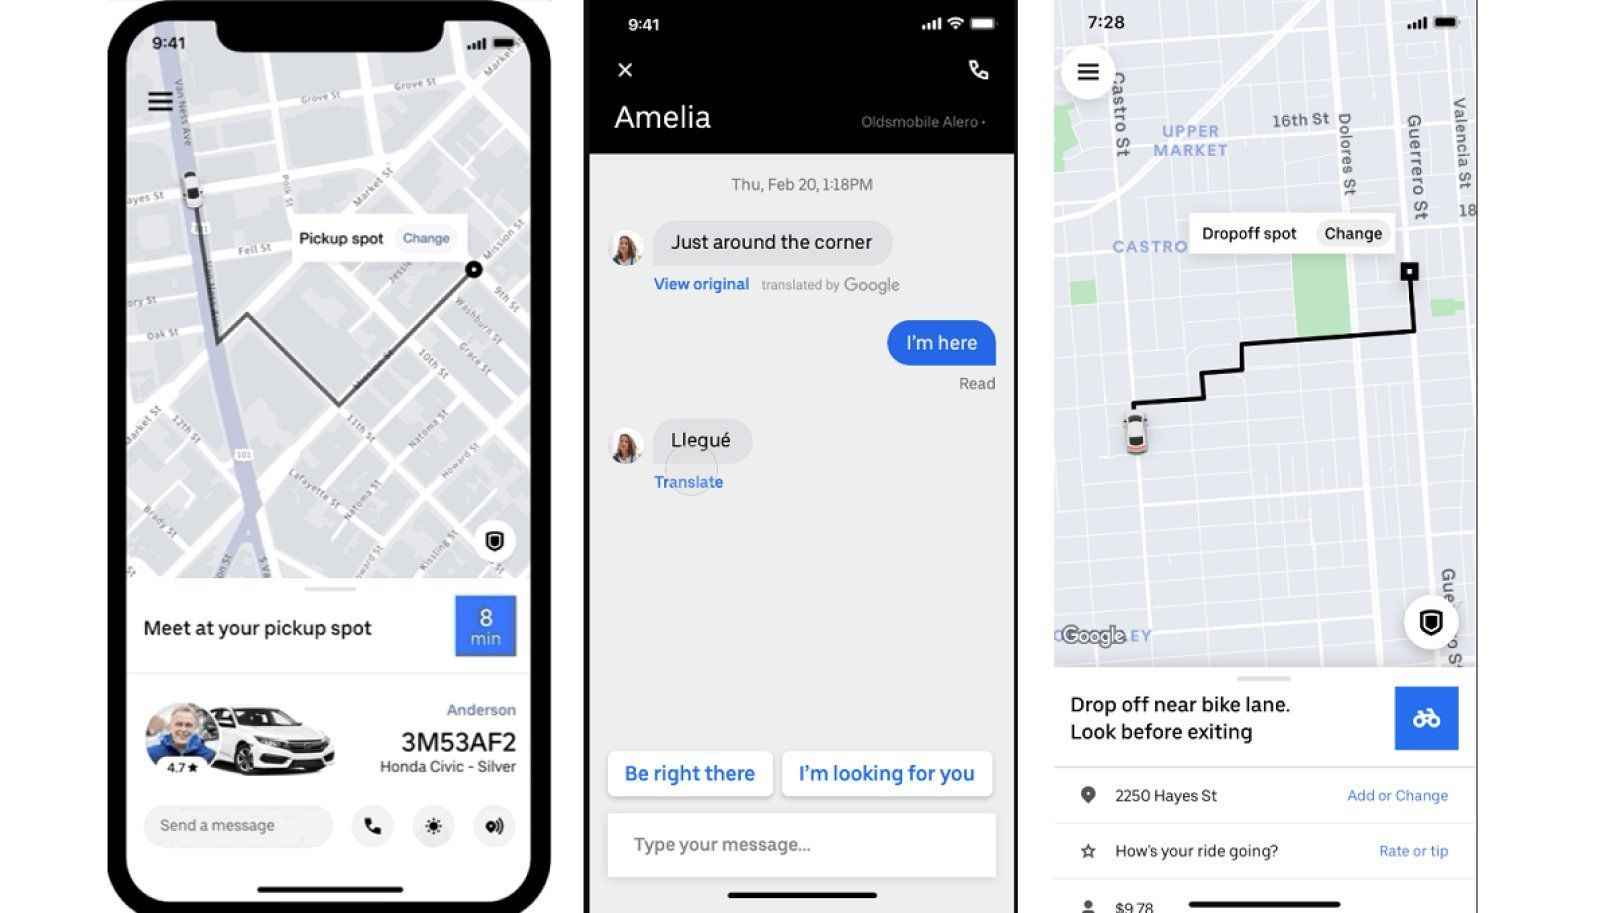 Uber's app update offers message translations and makes